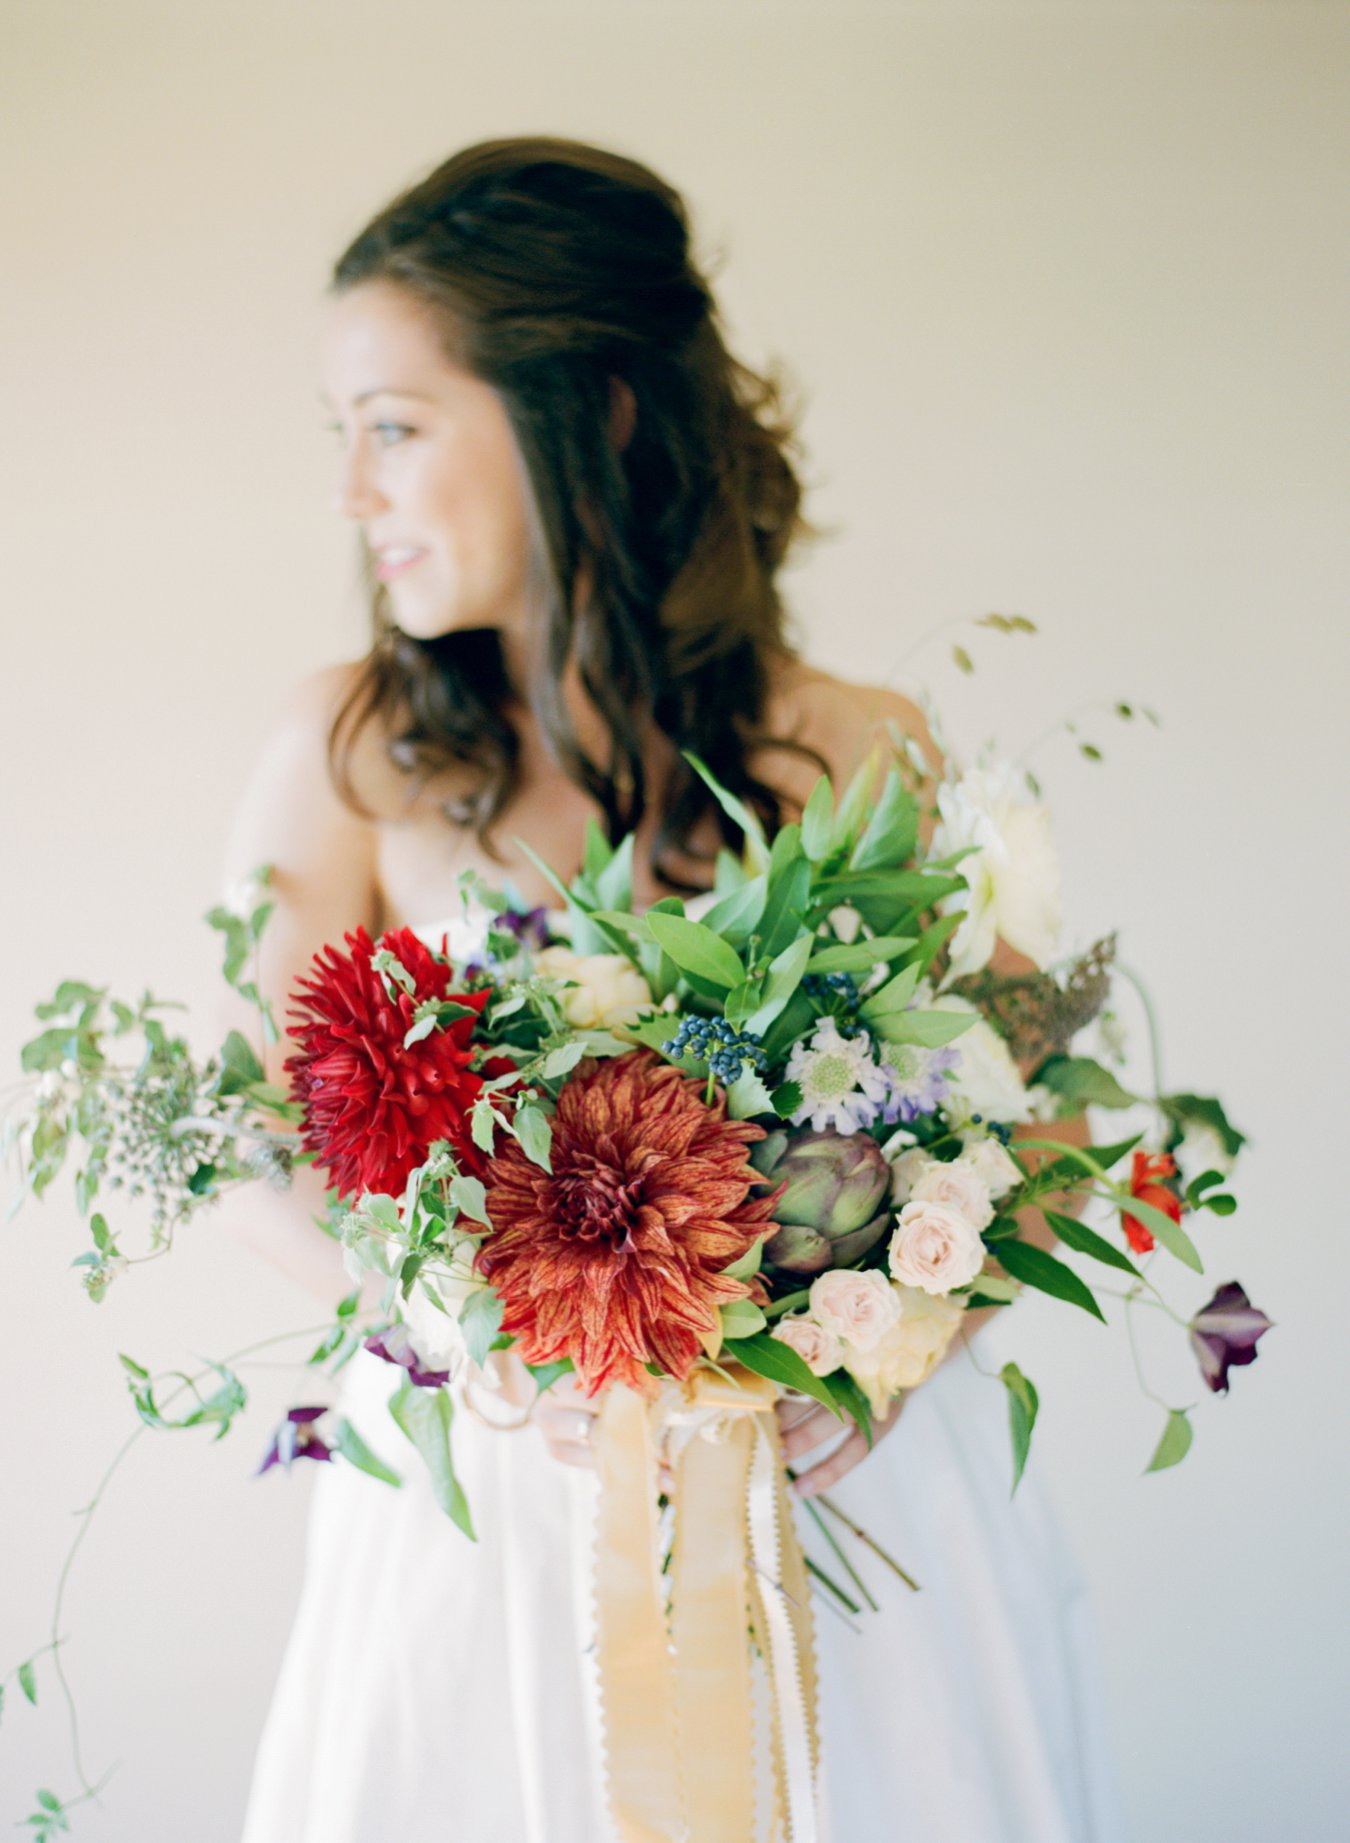 The Day's Design Floral | Bright & Bold bouquet | Cory Weber Photography